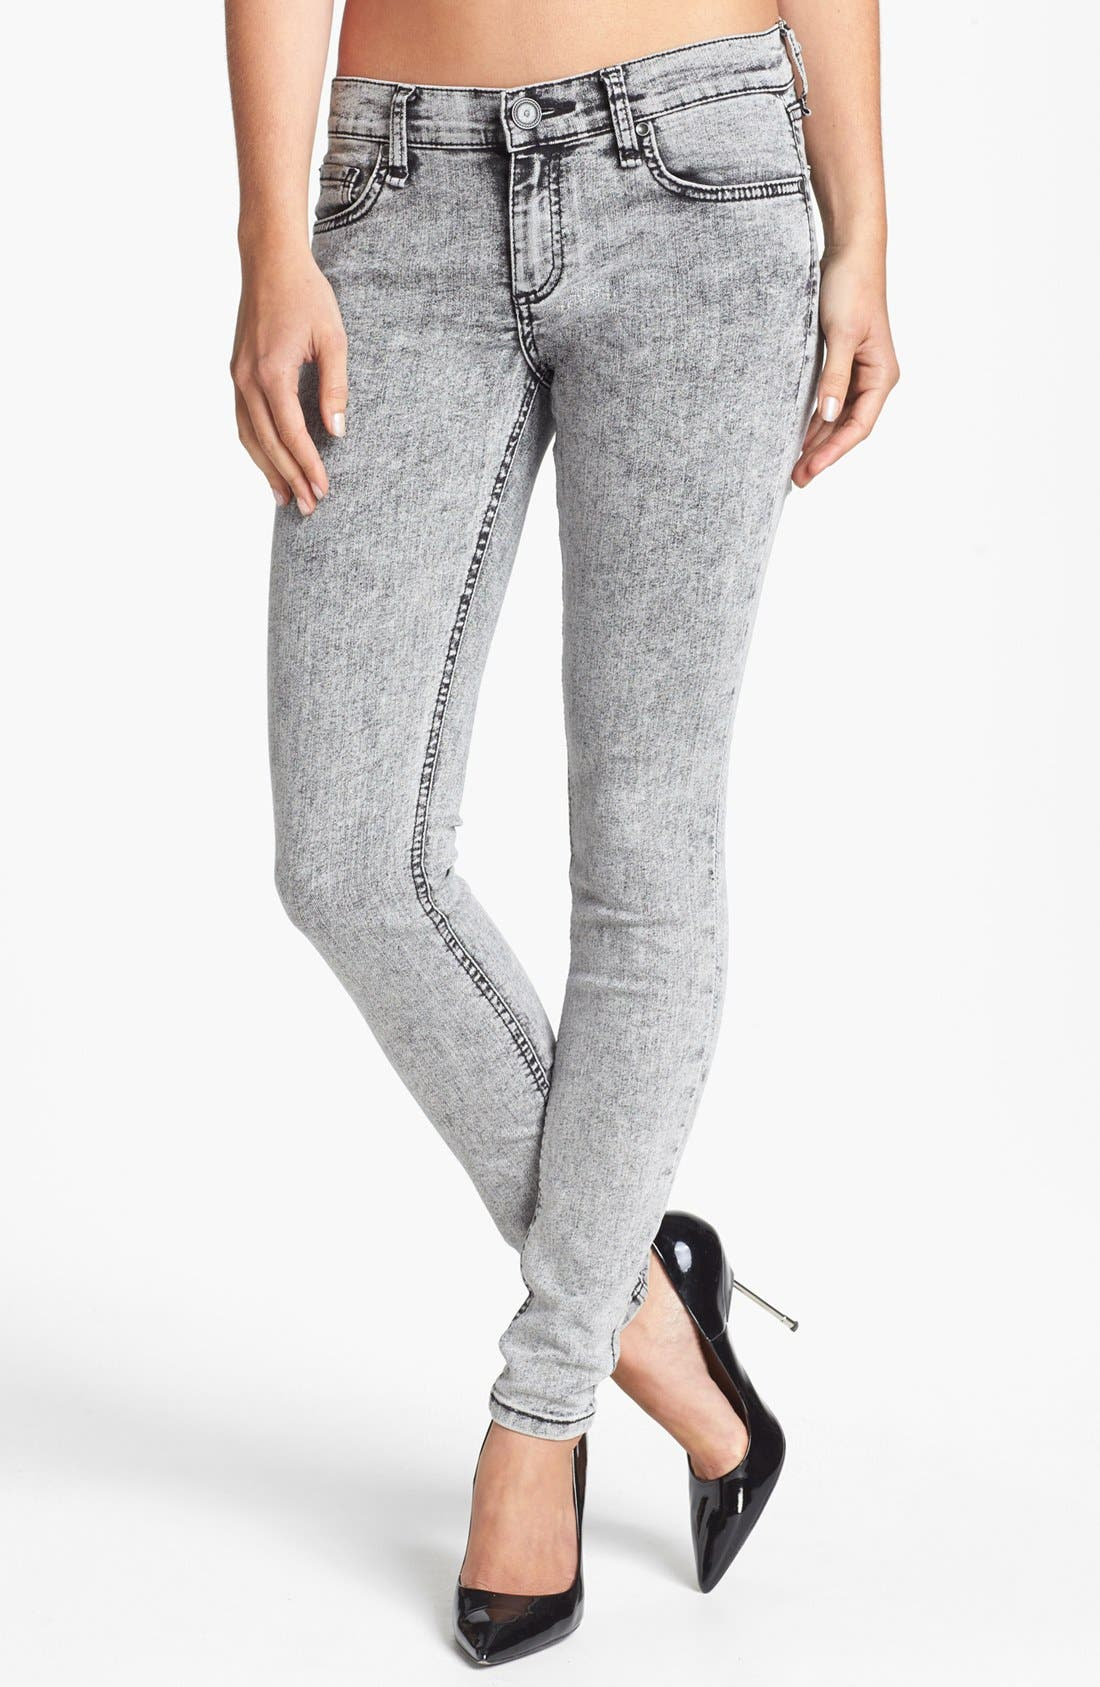 Alternate Image 1 Selected - edyson 'Sloan' Acid Wash Skinny Jeans (Grey Maven)